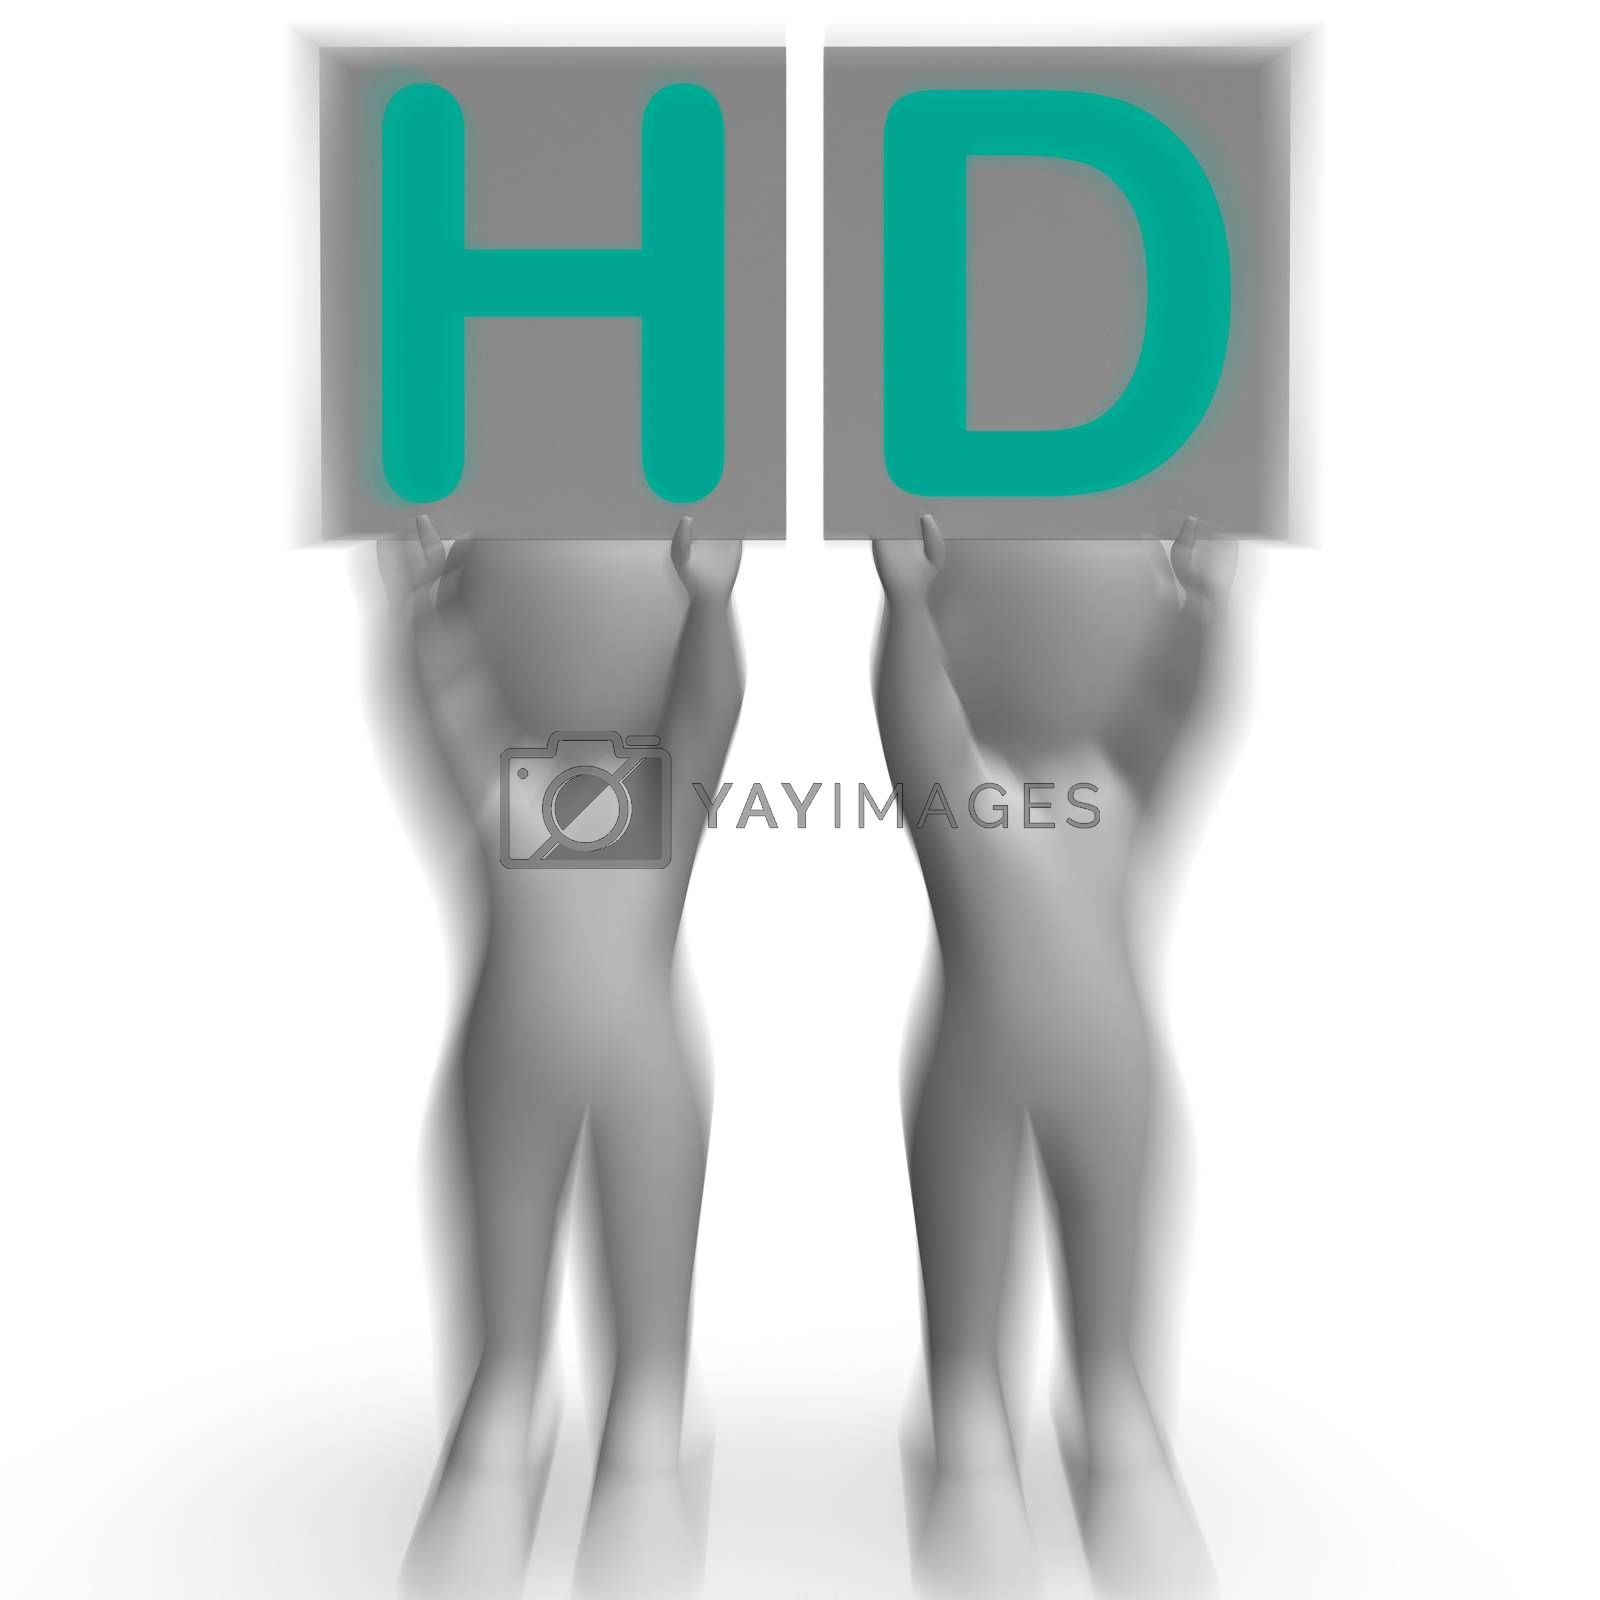 HD Placards Mean High Definition Television Or High Resolution by stuartmiles